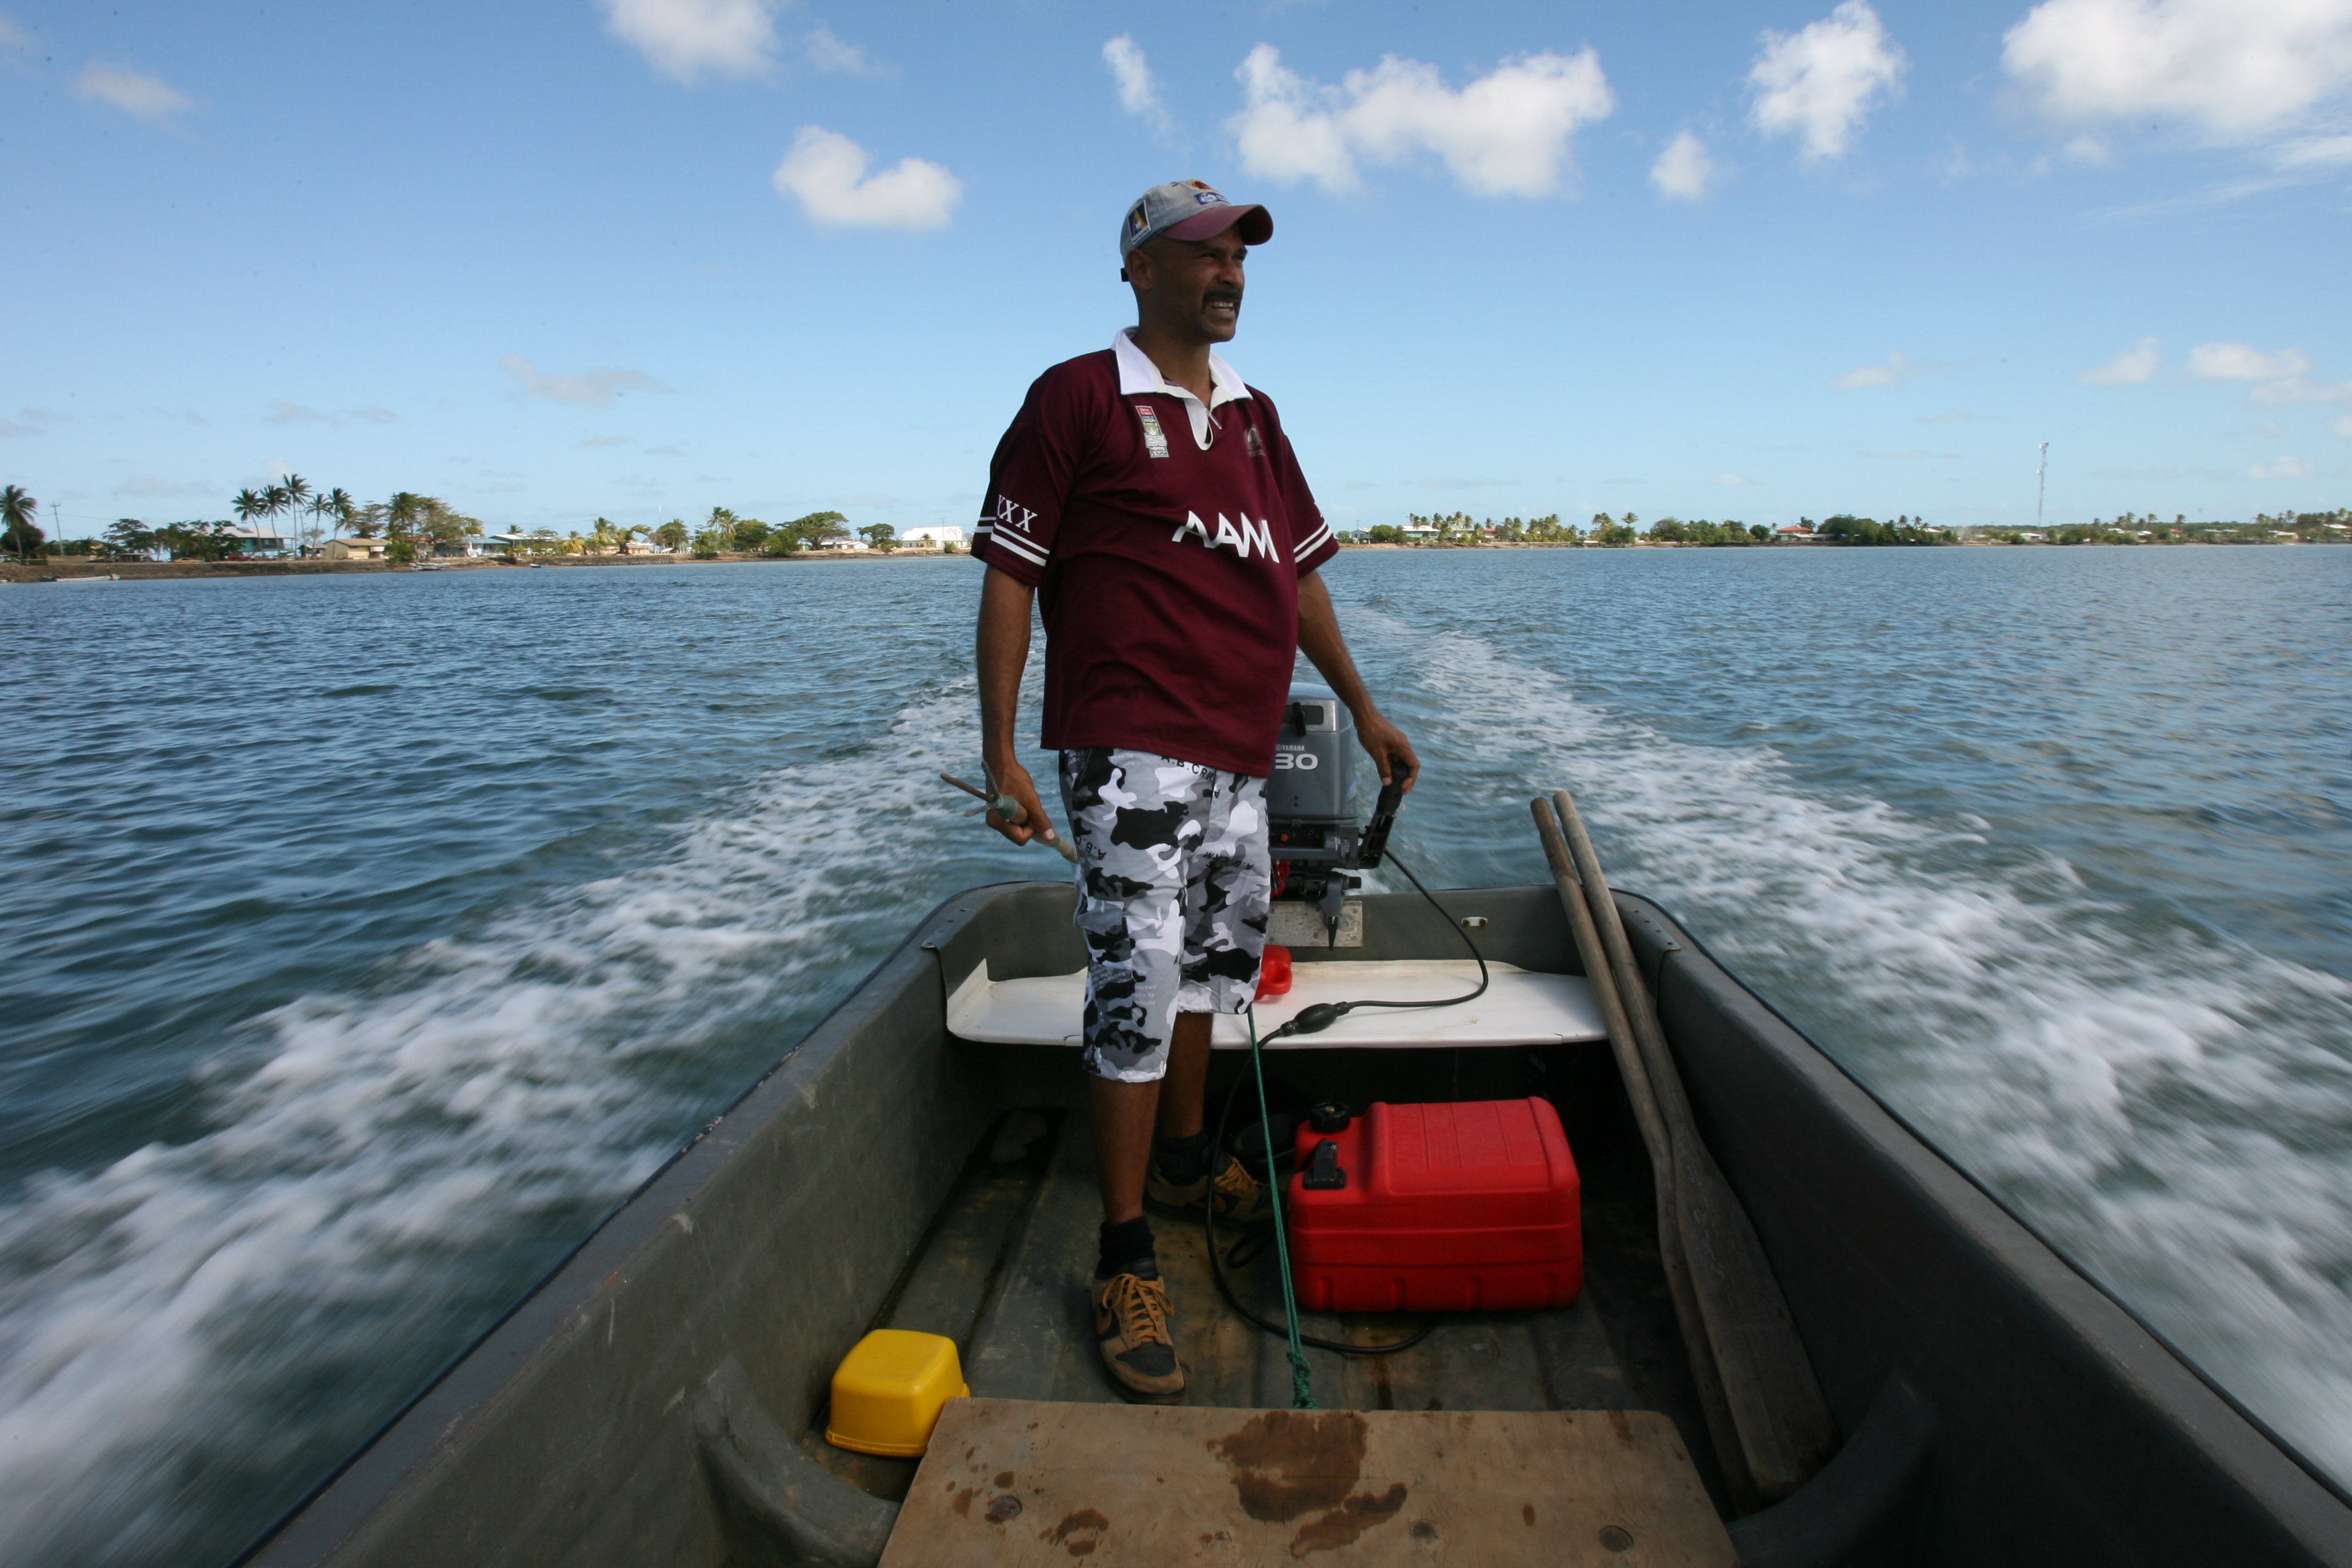 Jensen Warusam, from Saibai Island, on his boat in the Torres Strait.